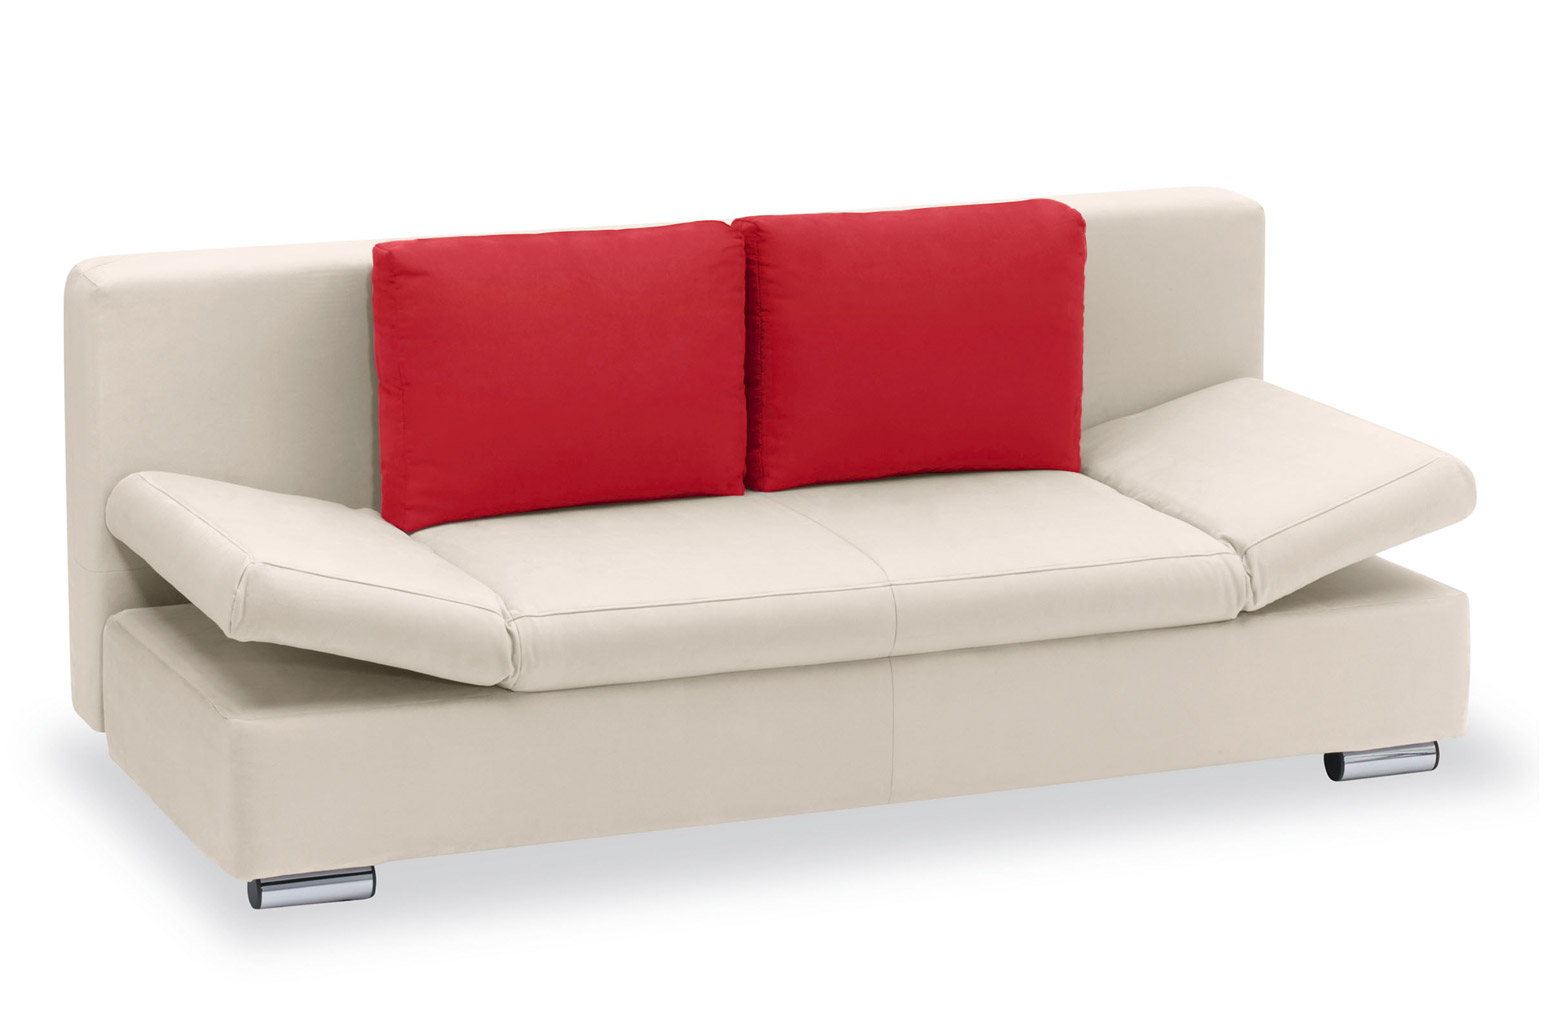 Extra Tiefes Sofa Graues Schlafsofa Trendy Graues Schlafsofa Hilltown In